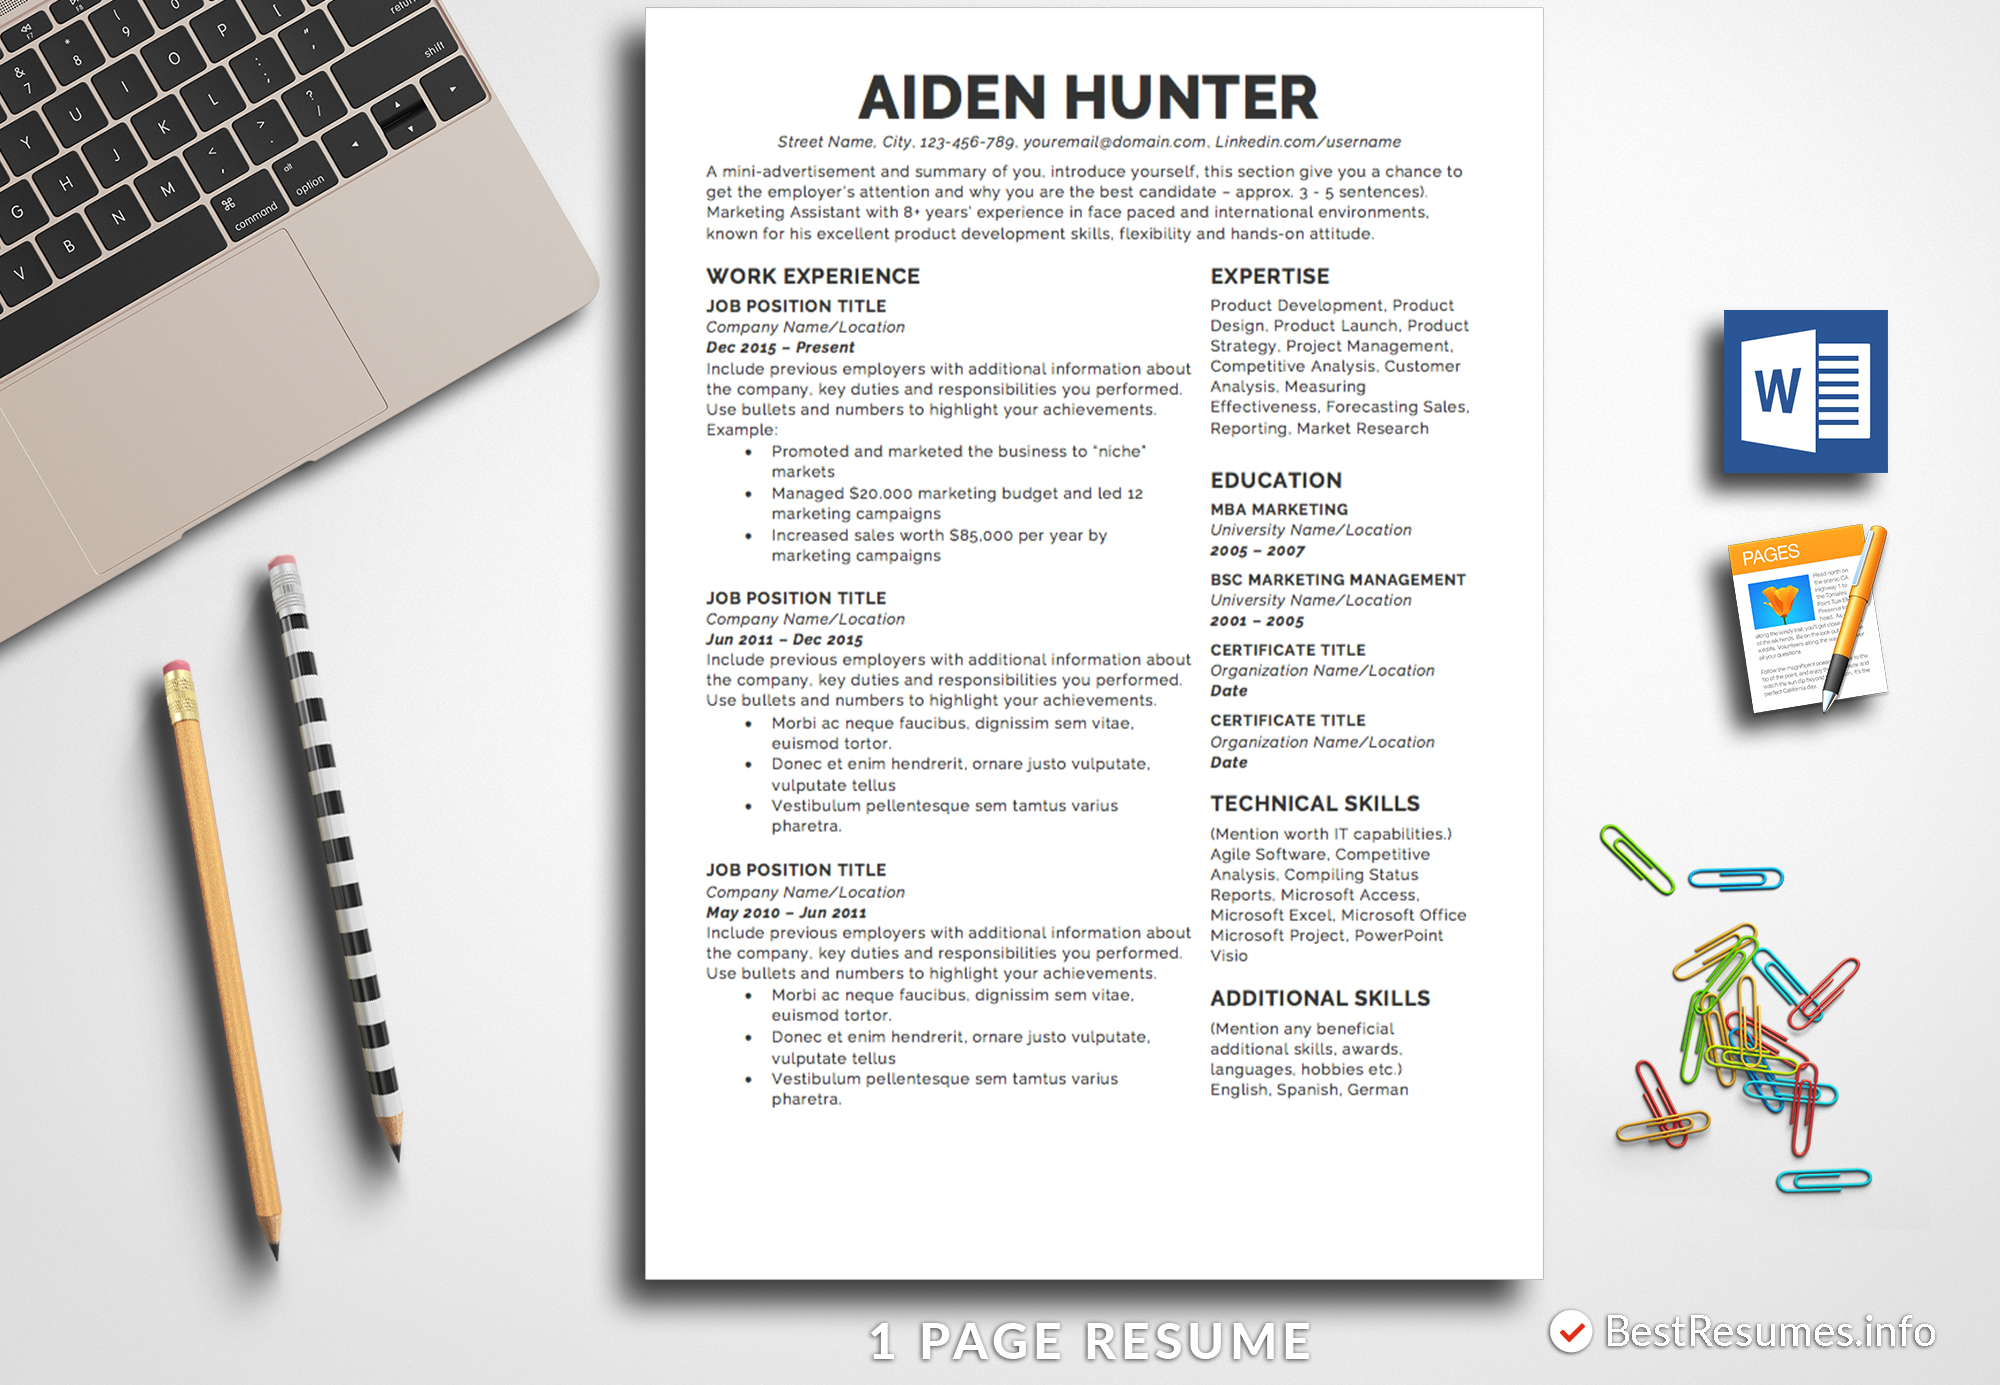 Resume Templates Pages - Resume Template Aiden Hunter Bestresumes